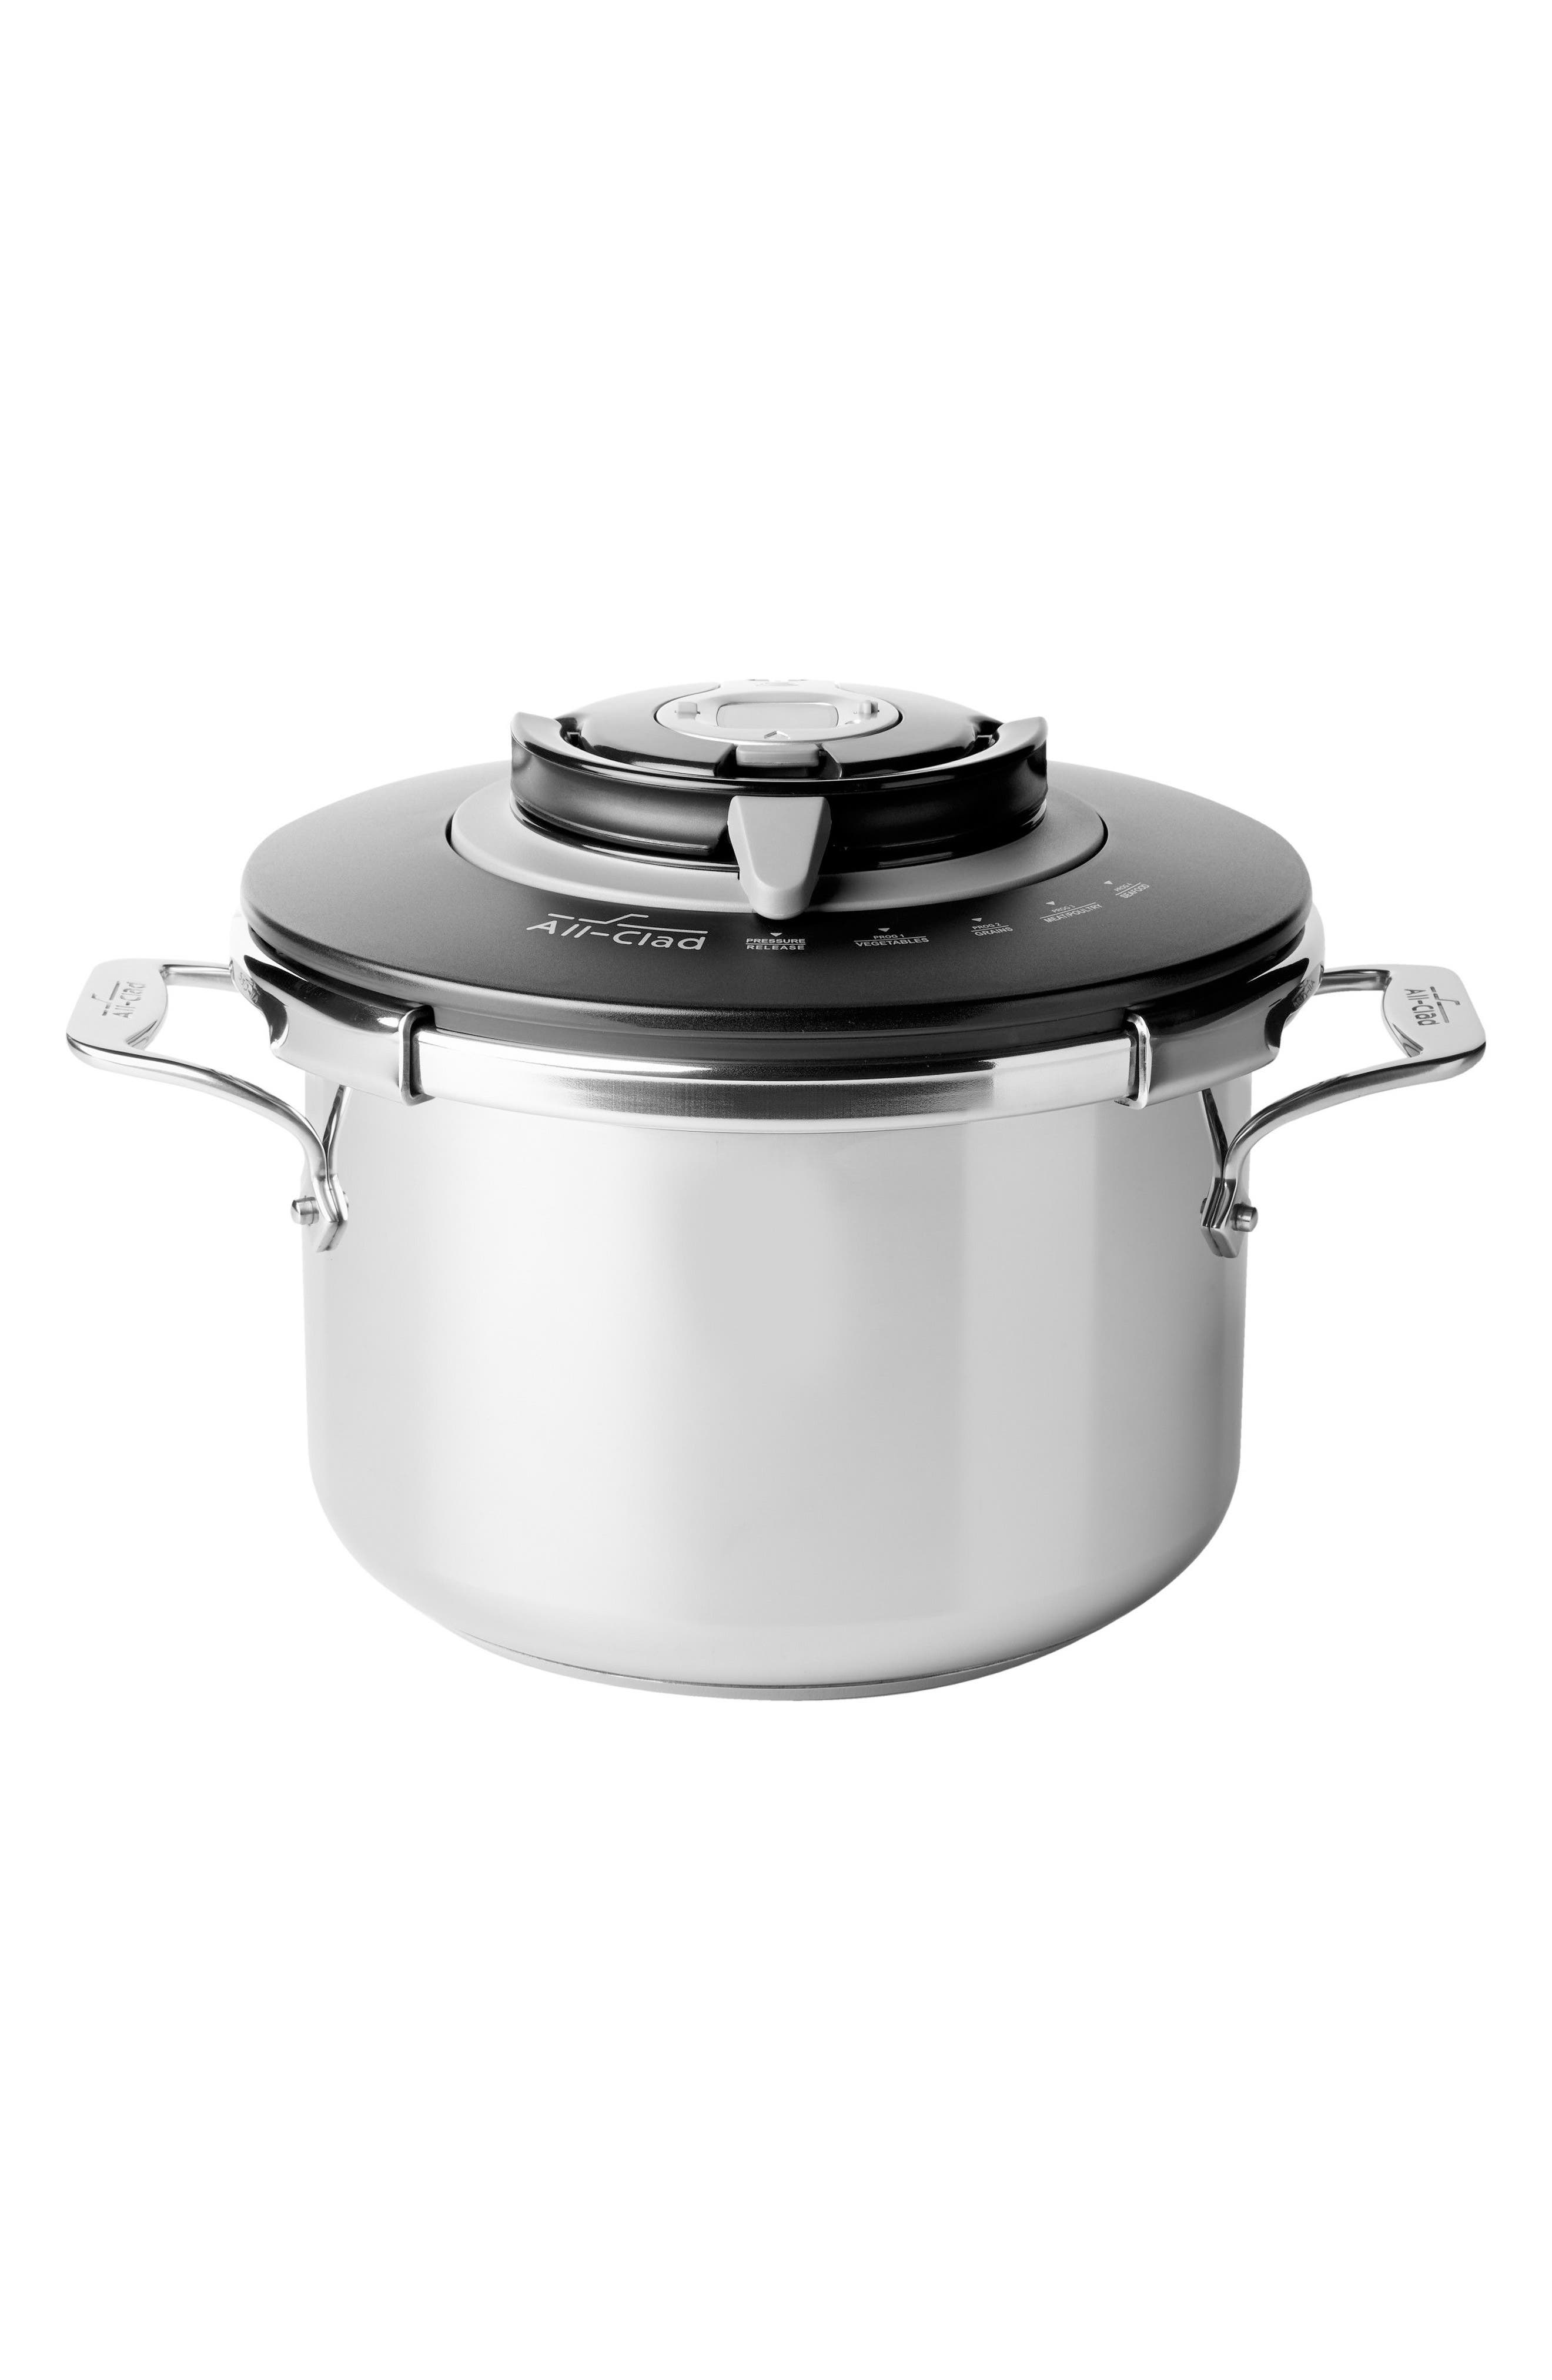 Main Image - All-Clad 8.4-Quart Stovetop Pressure Cooker